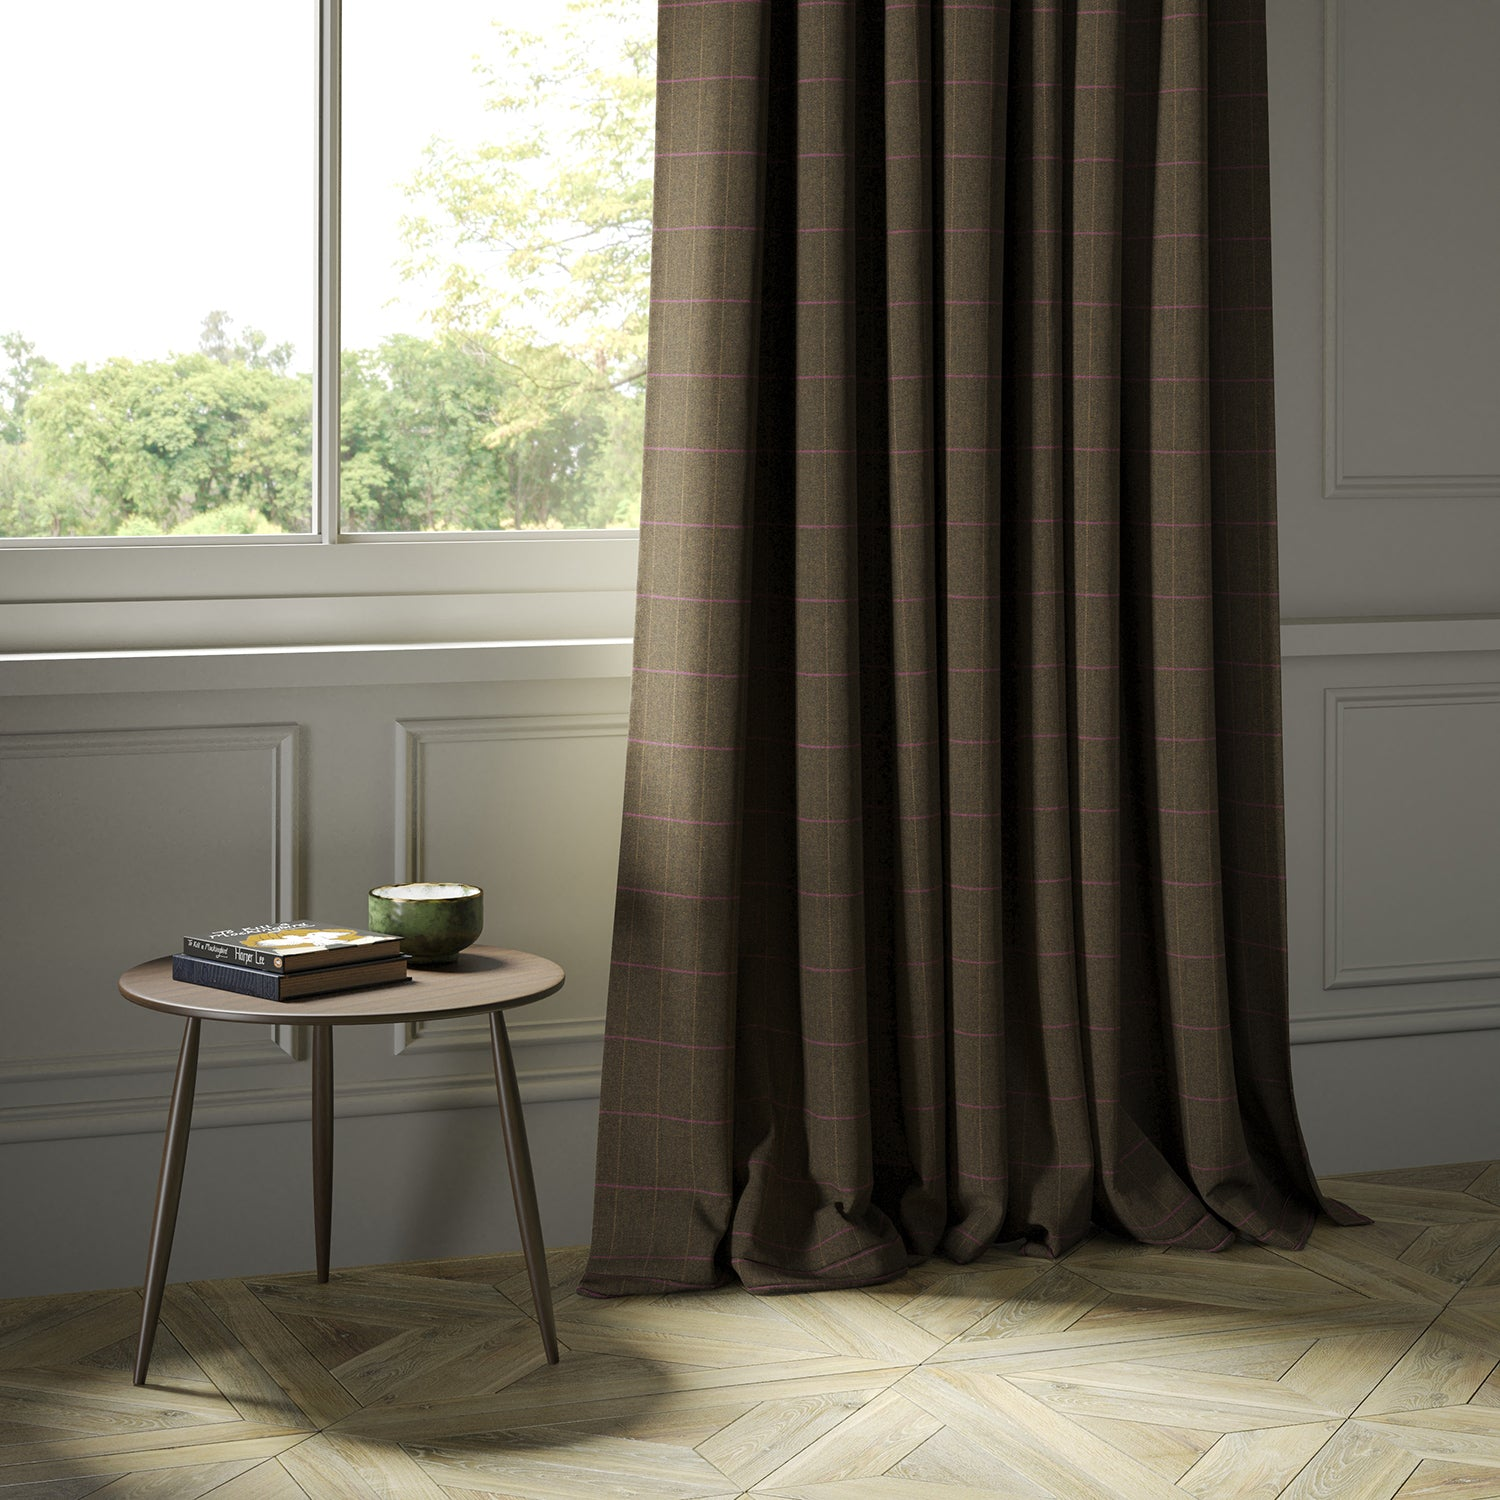 Curtains in a brown Scottish wool windowpane check fabric